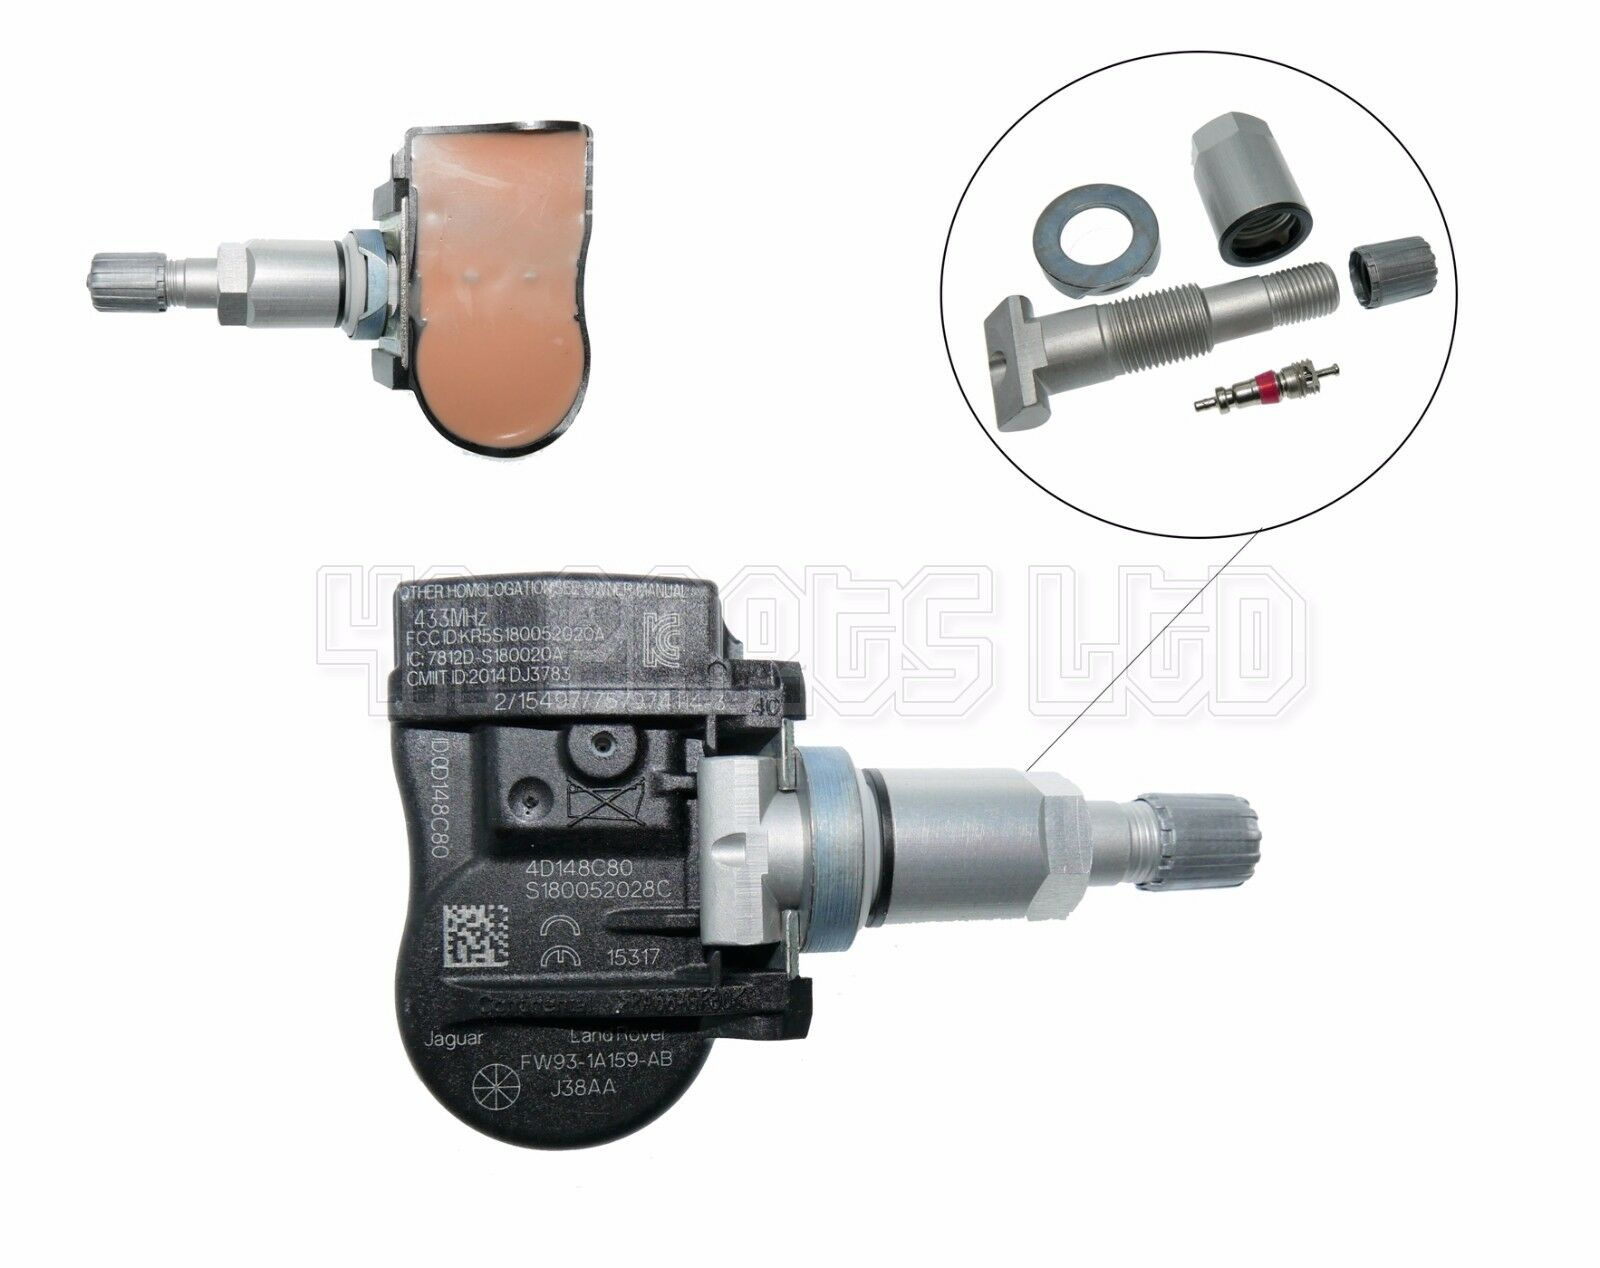 1x peugeot 407 207 307 208 508 tyre pressure sensor tpms 433mhz 9681102280 chf. Black Bedroom Furniture Sets. Home Design Ideas